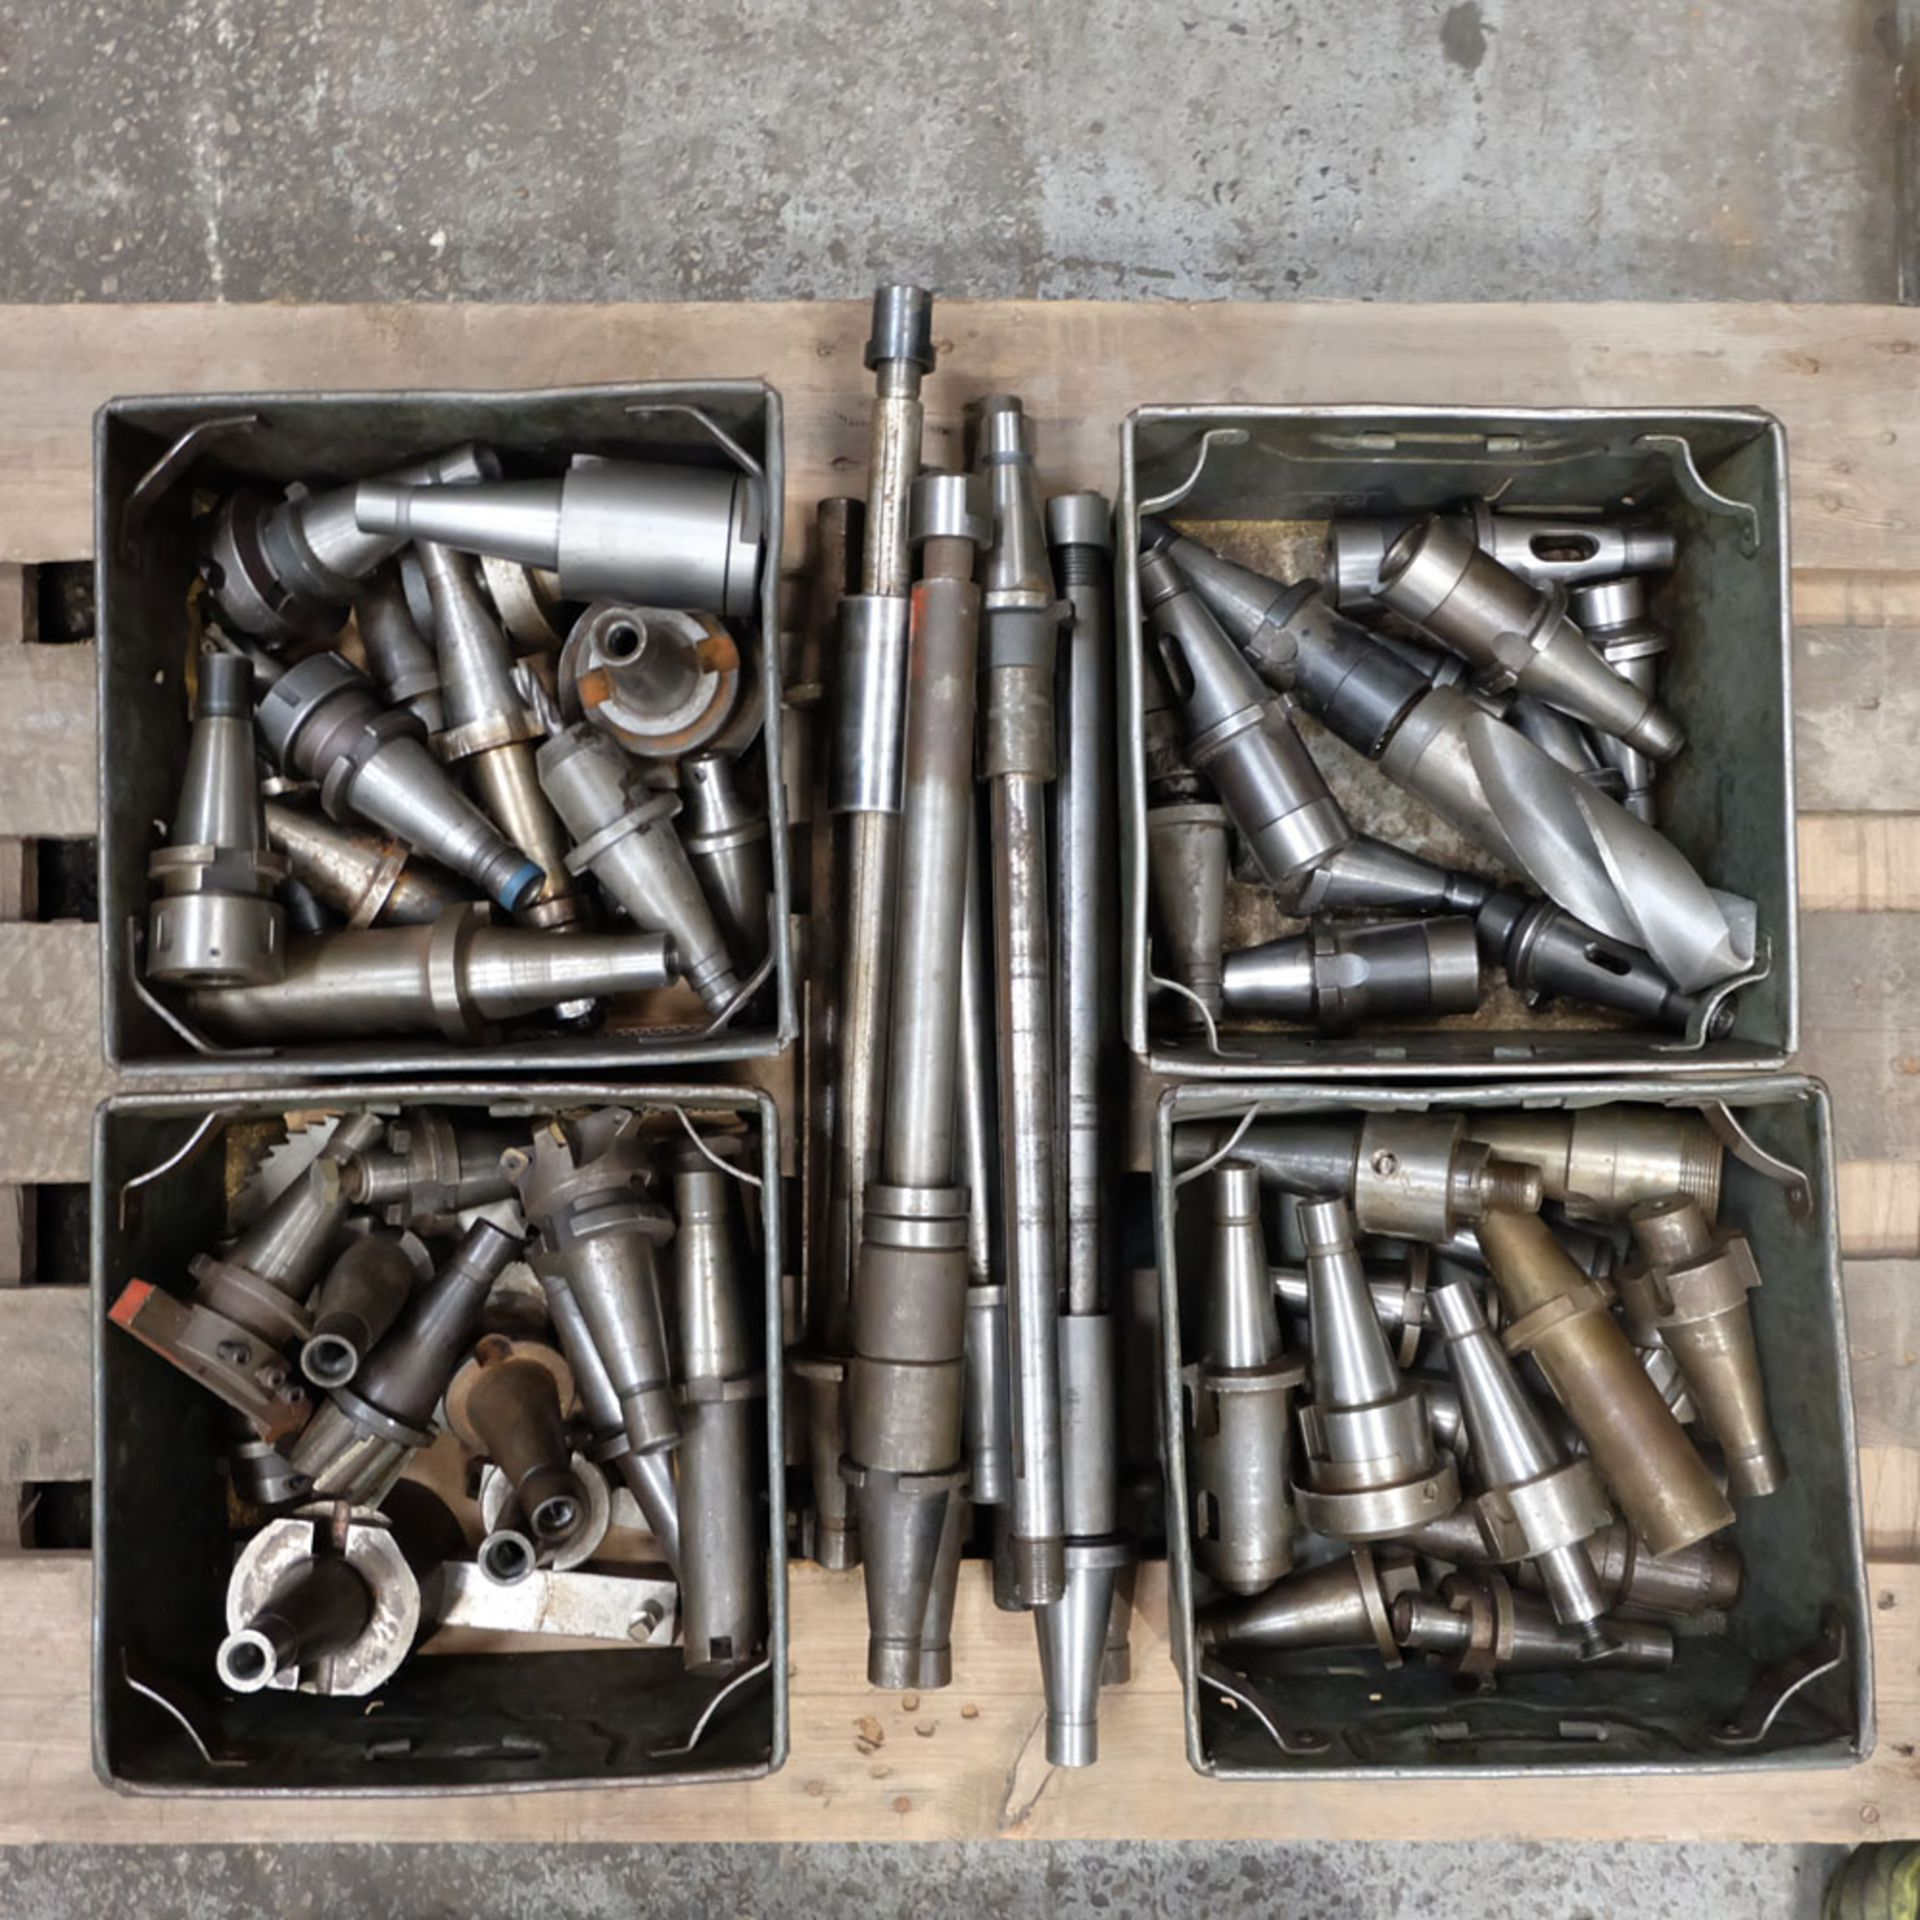 Quantity of 40 ISO Spindle Tooling